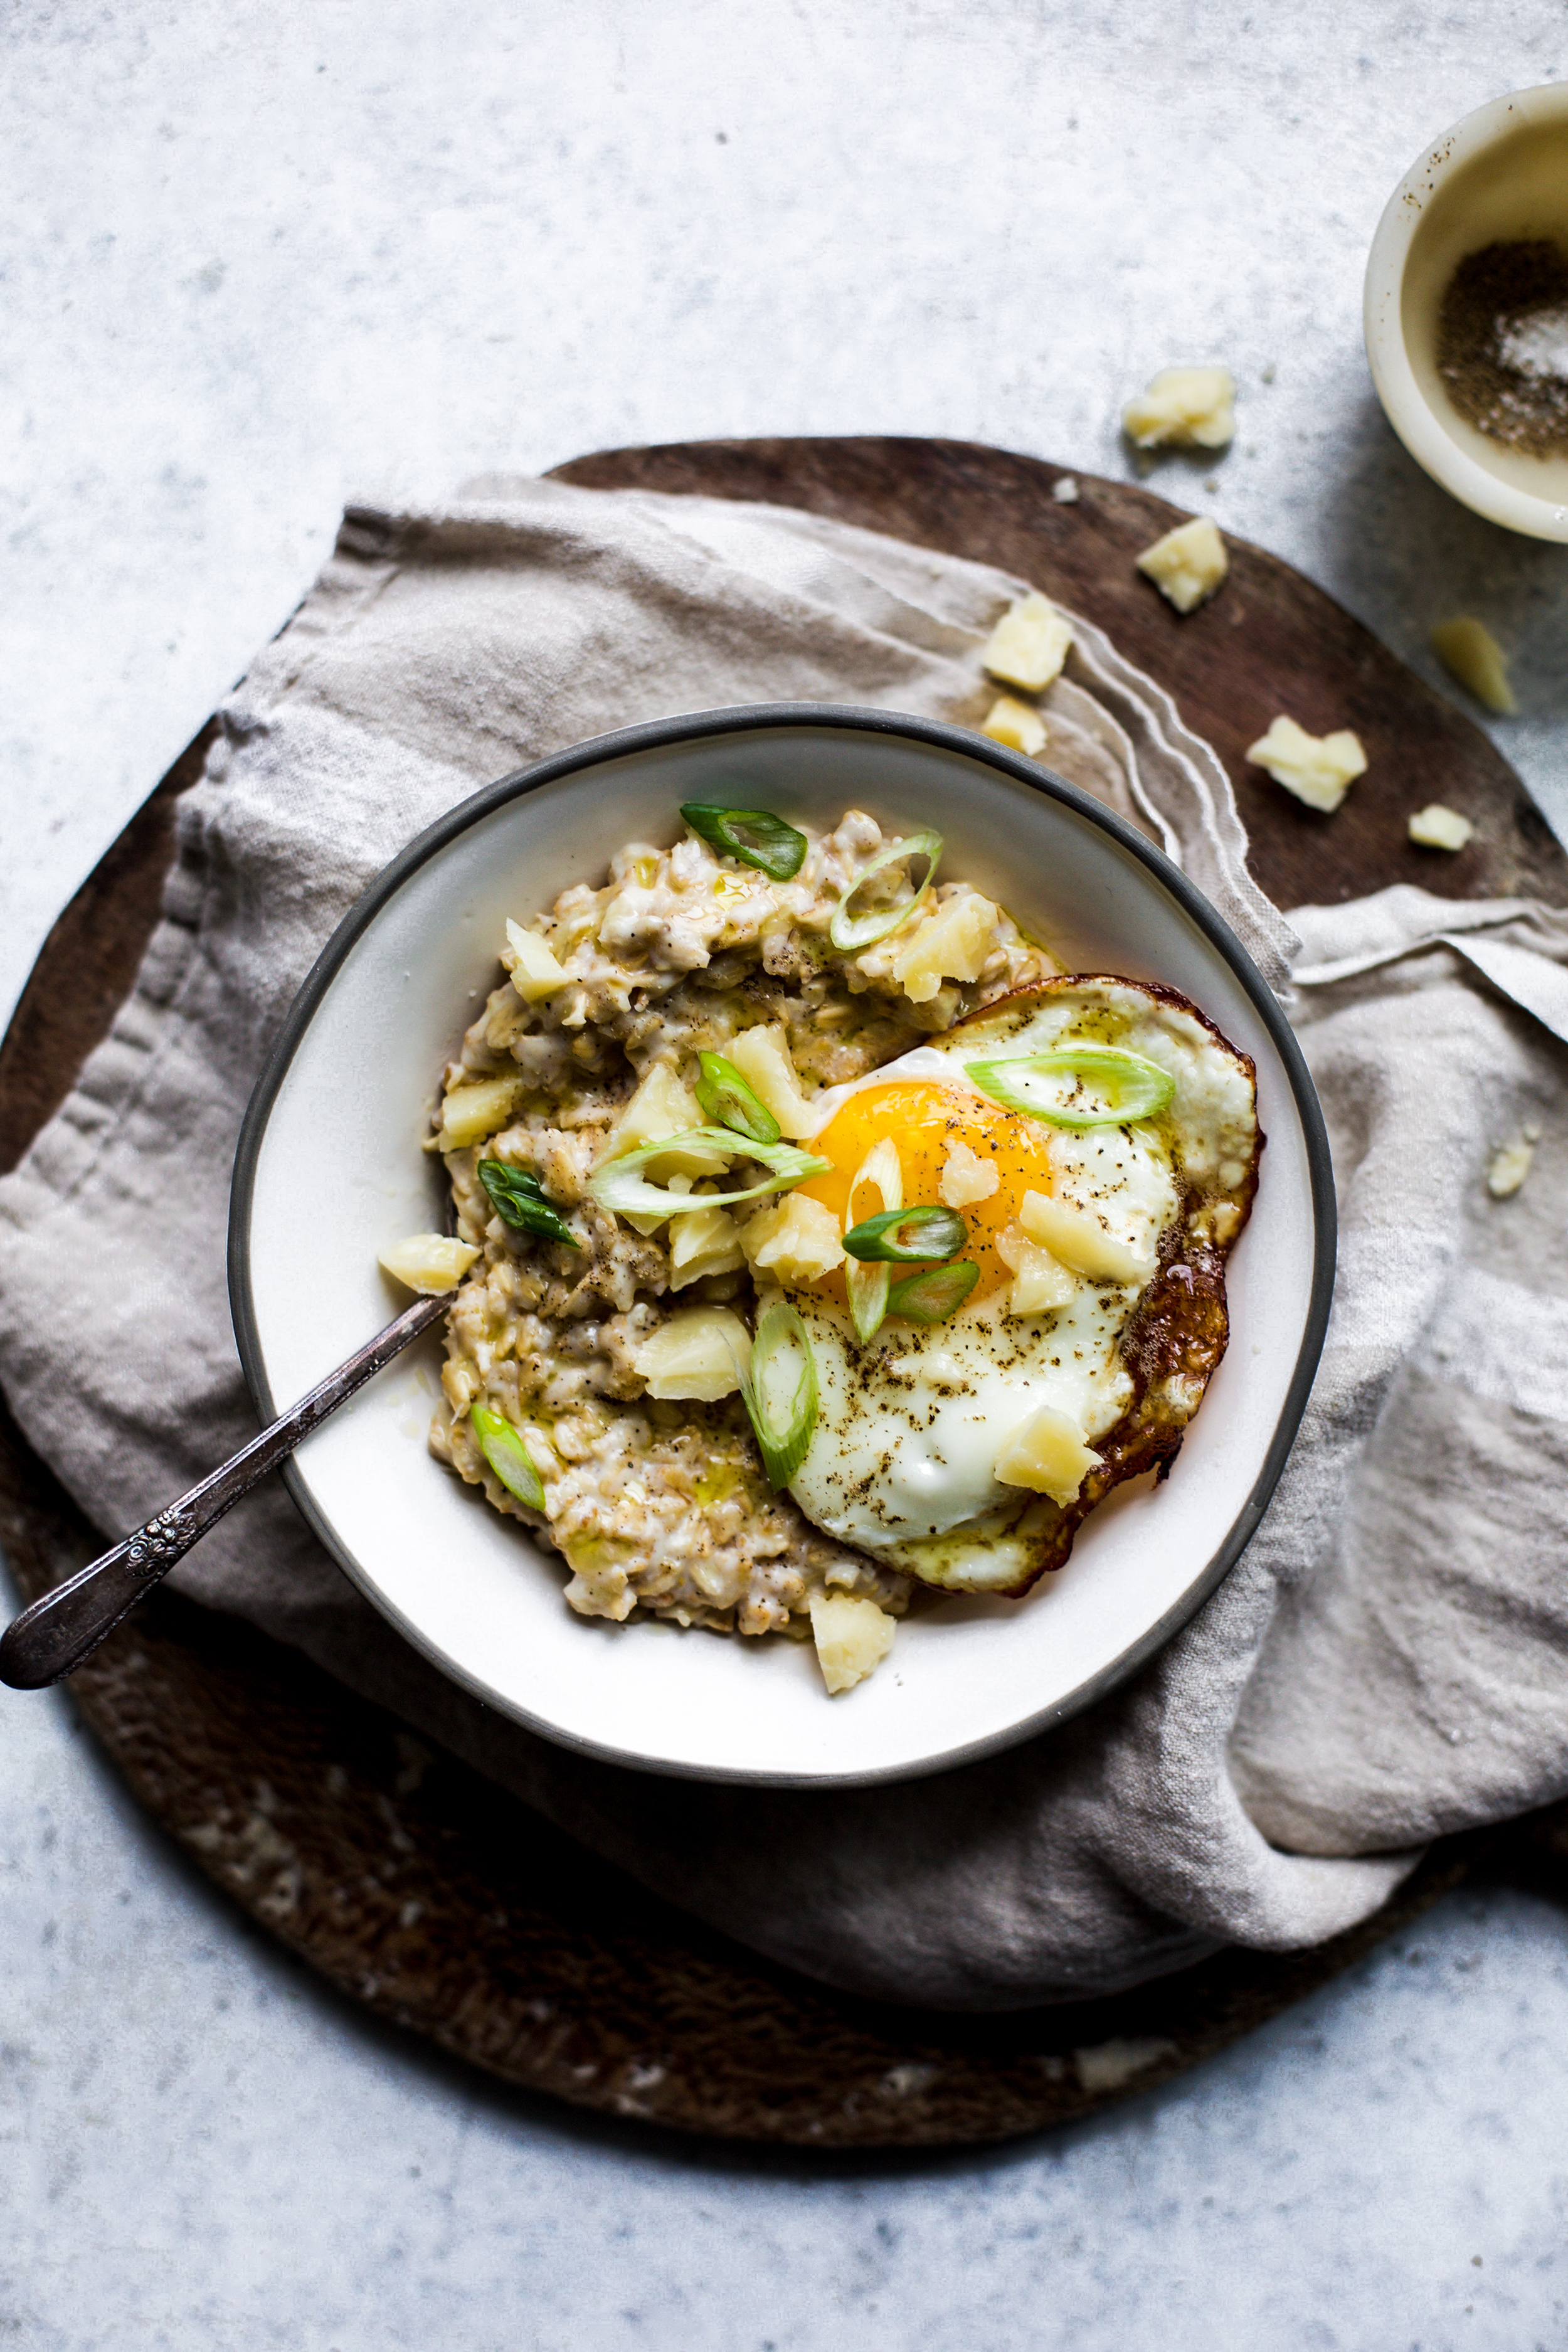 Savory Oats with Parmesan and Olive Oil: My Diary of Us